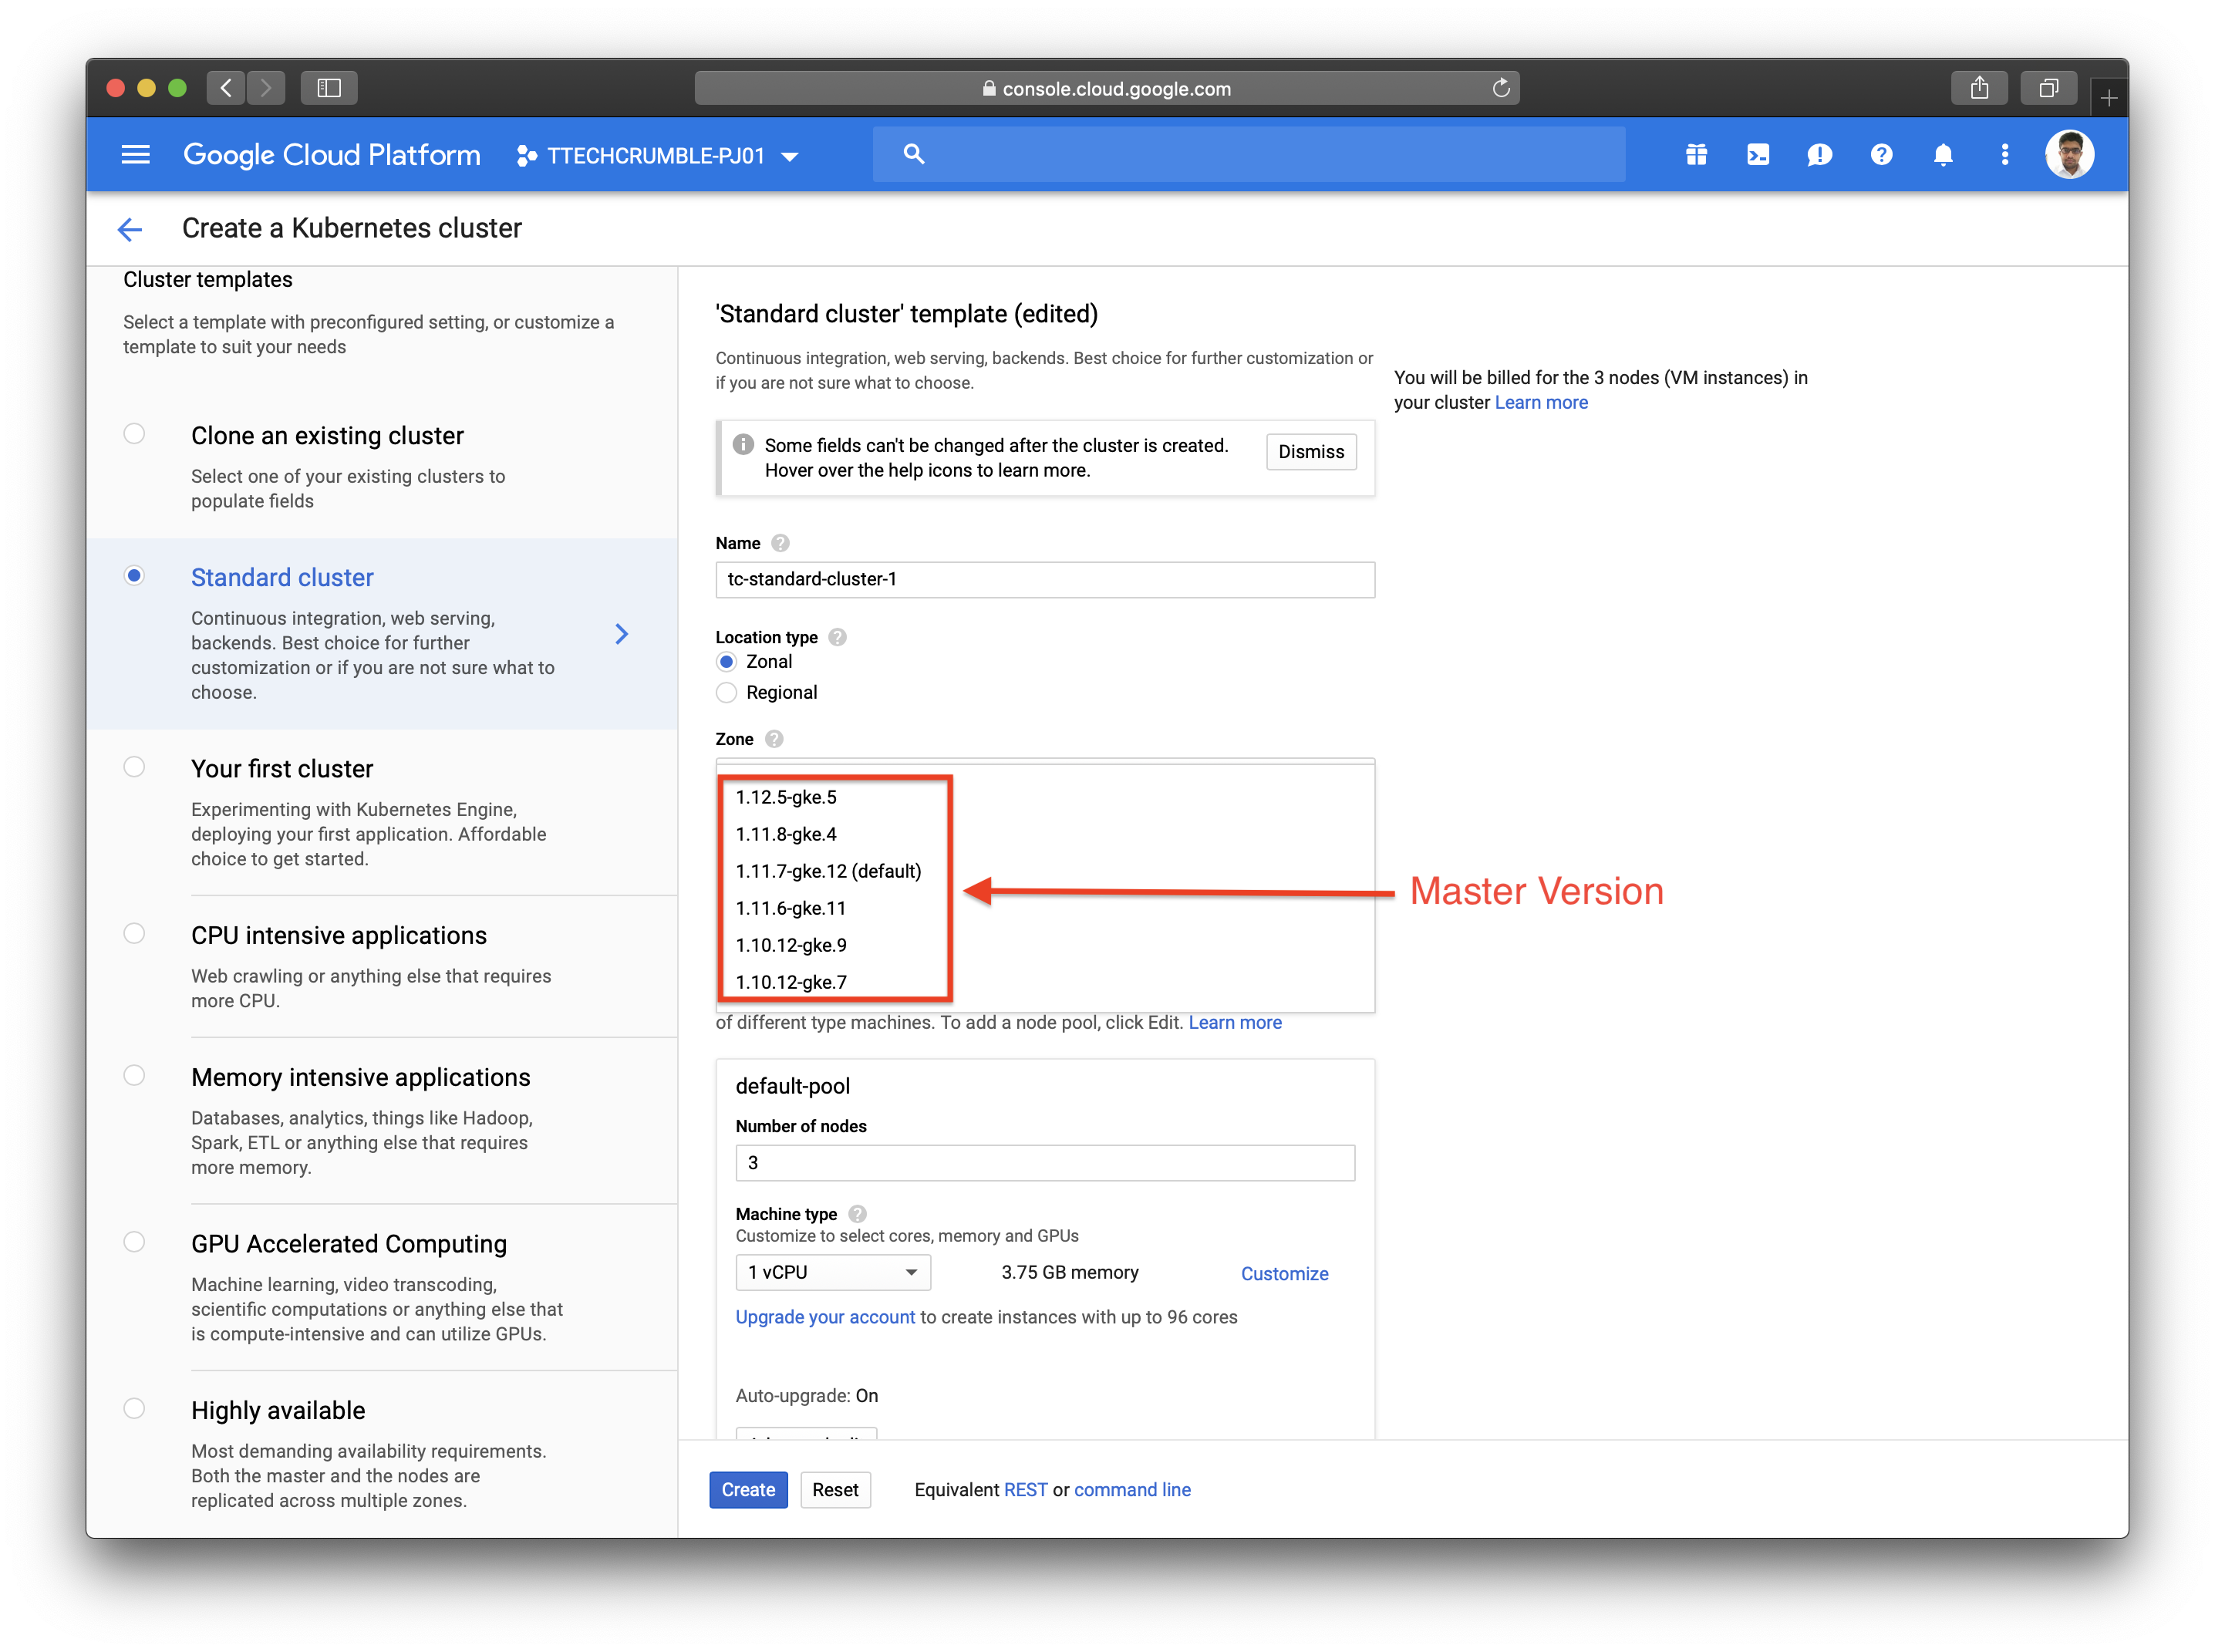 How To Start Working With Google Kubernetes Engine (GKE)